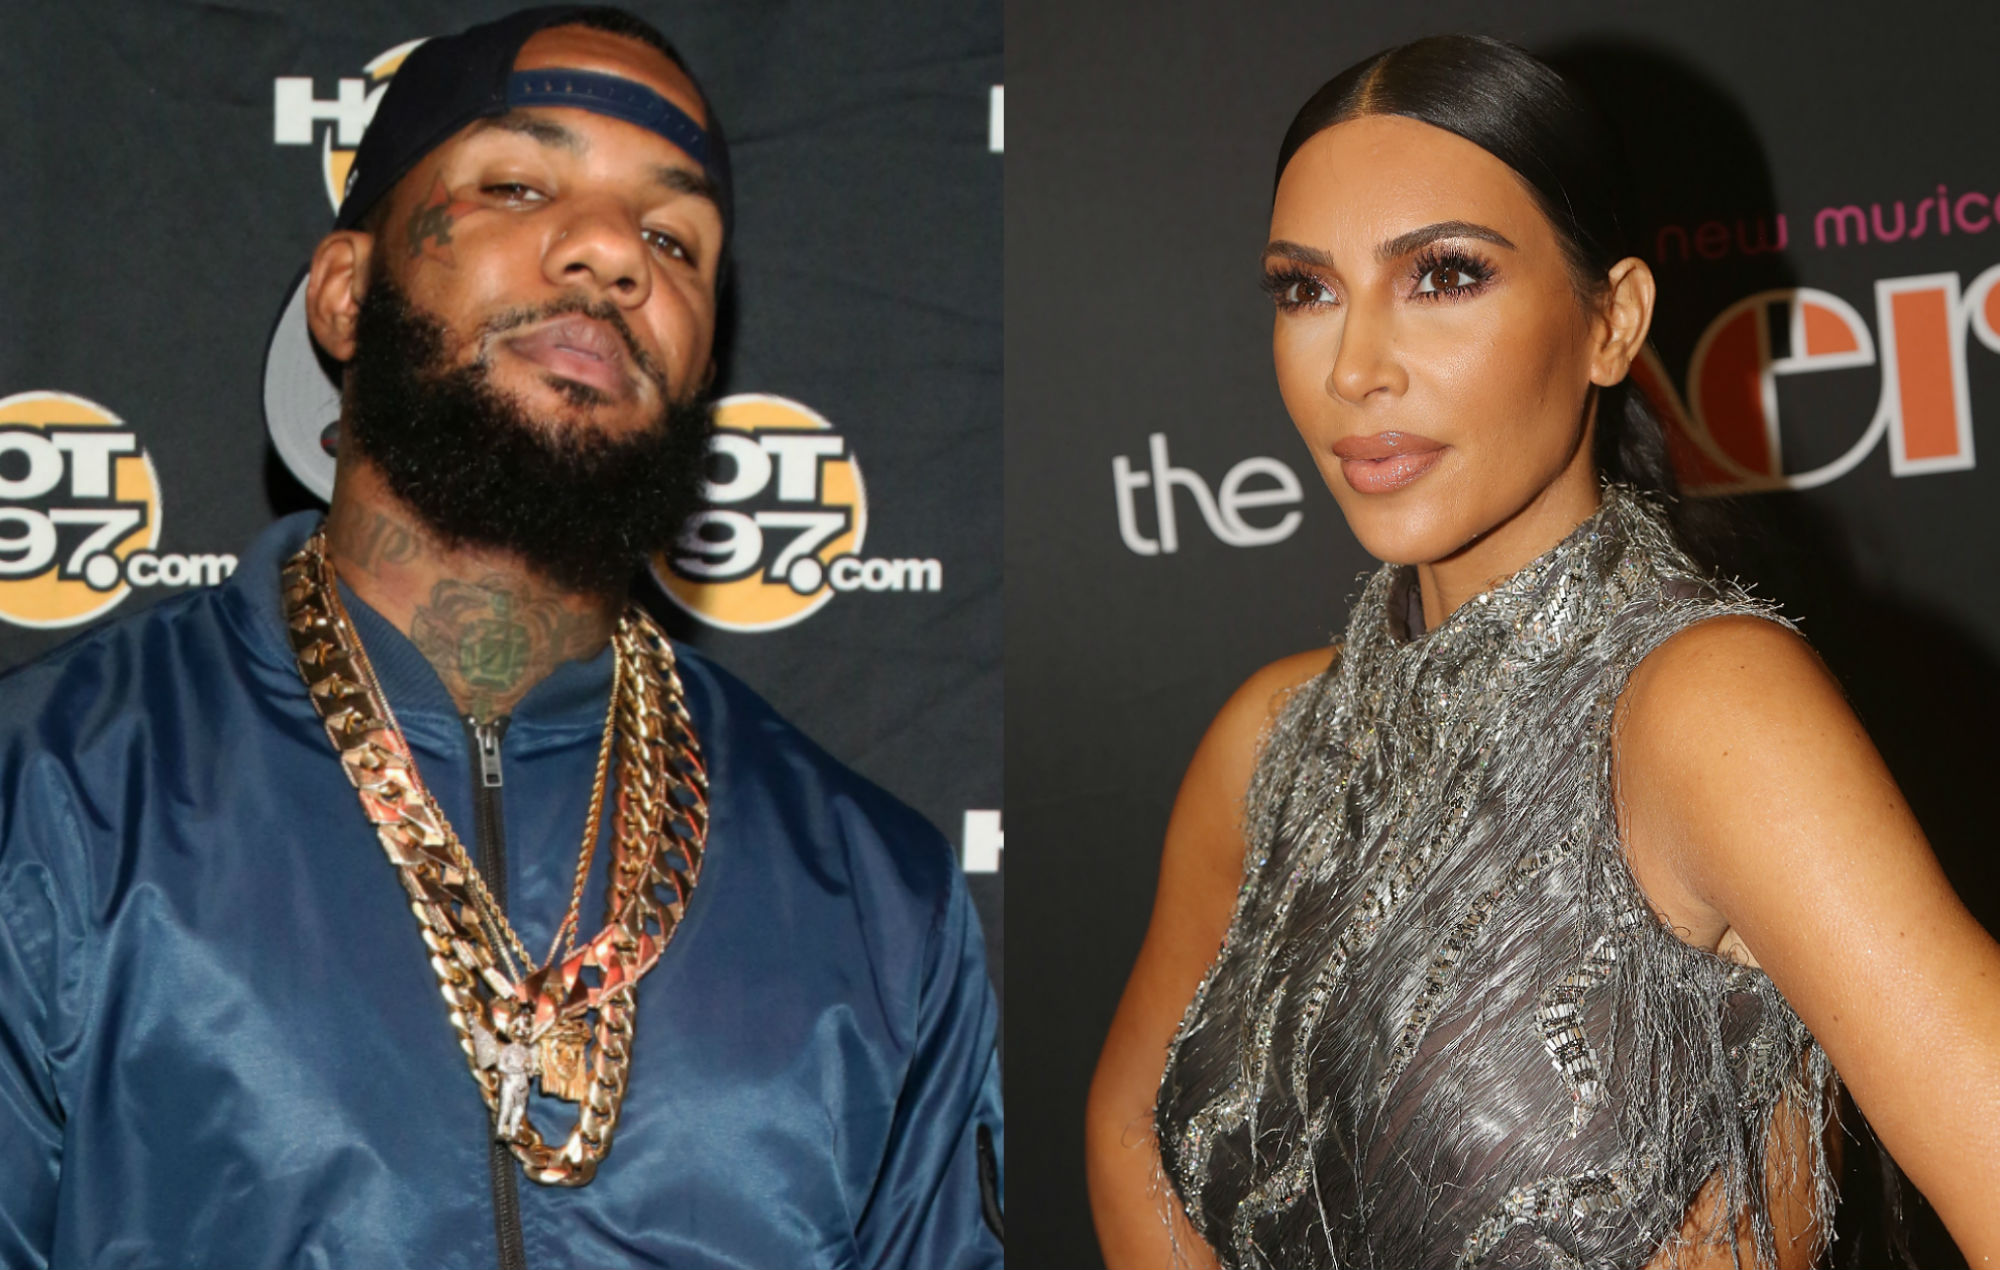 The Game Raps About Having Sex With Kim Kardashian In New Song Apologises To Kanye West